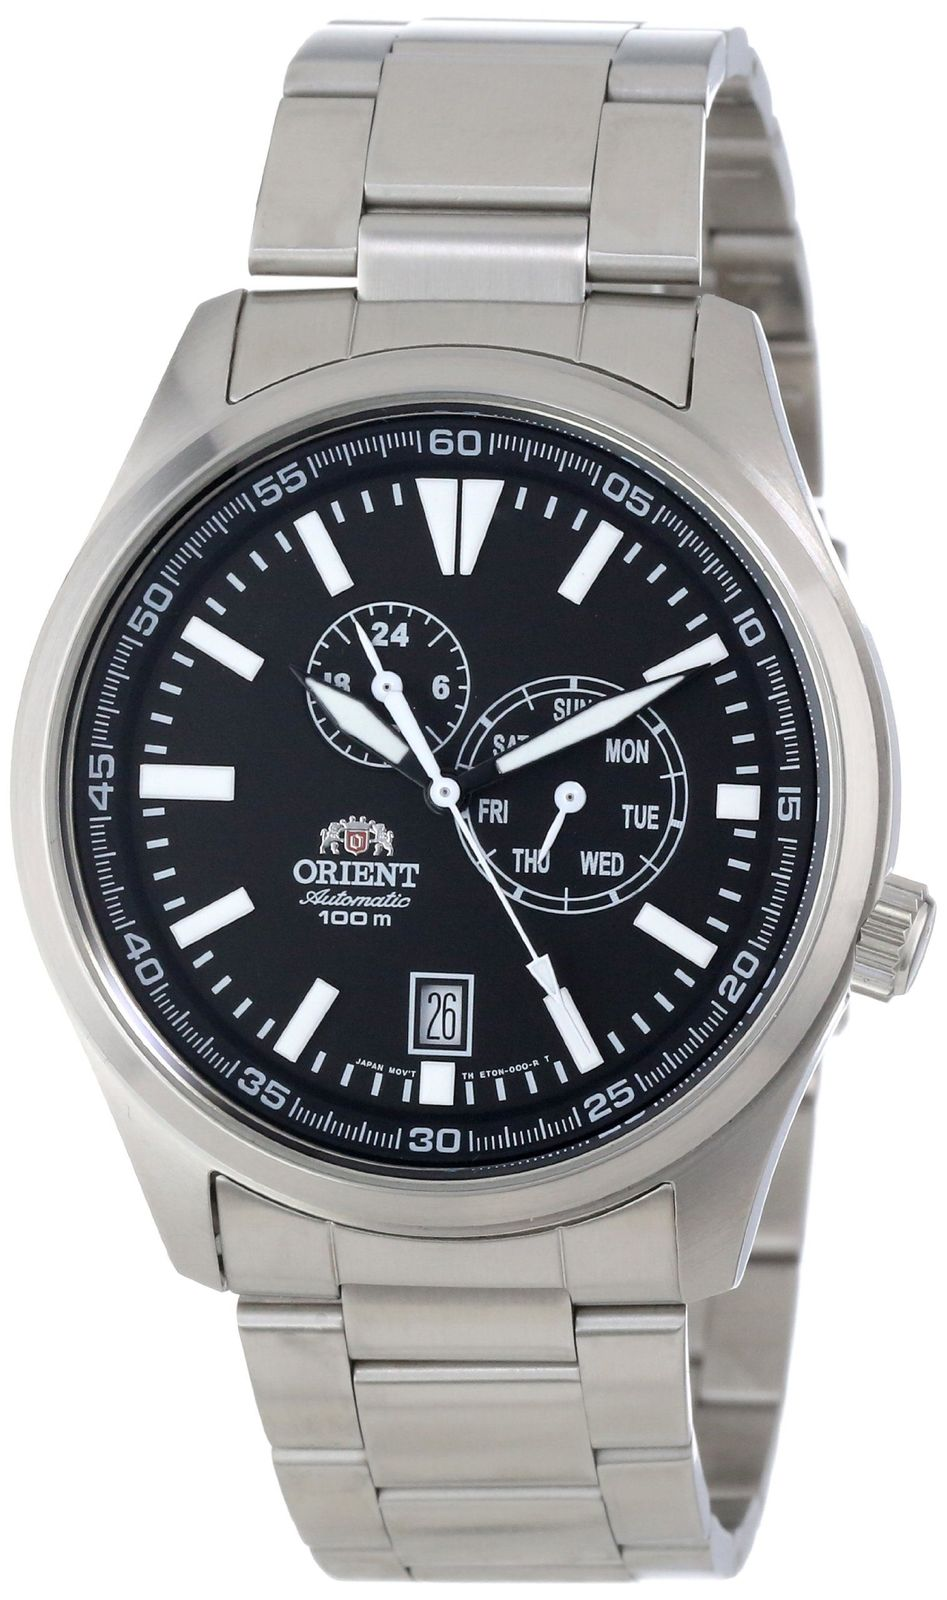 นาฬิกาผู้ชาย Orient รุ่น FET0N001B0,Sport Defender Multi-Eye Function Automatic Men's Watch